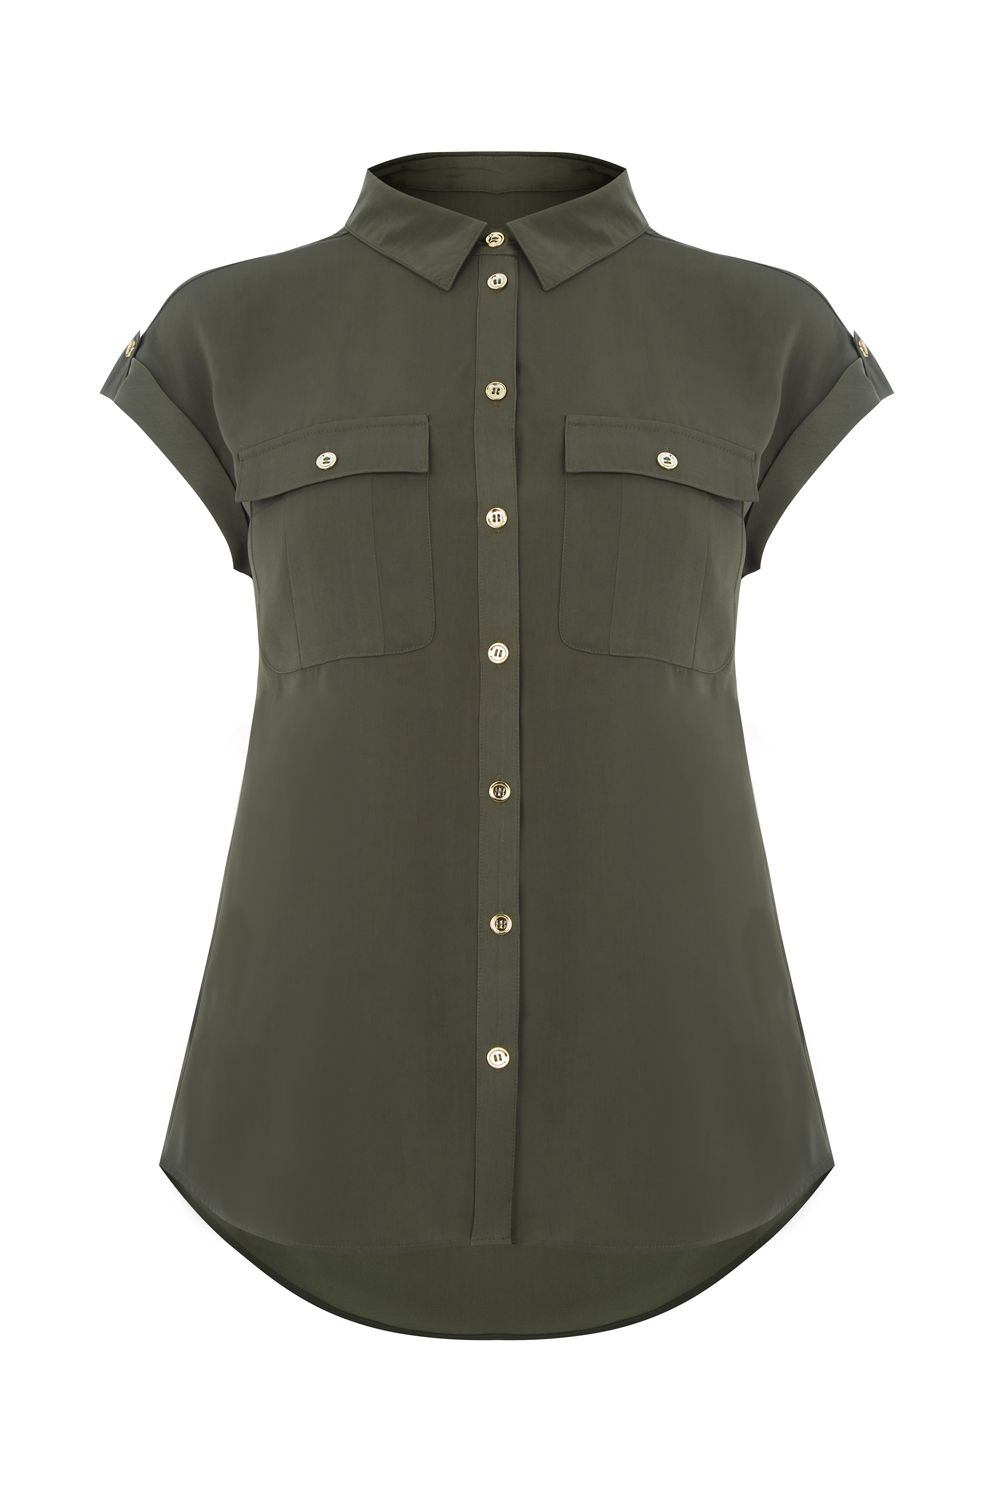 Oasis Soft Safari Shirt, Green